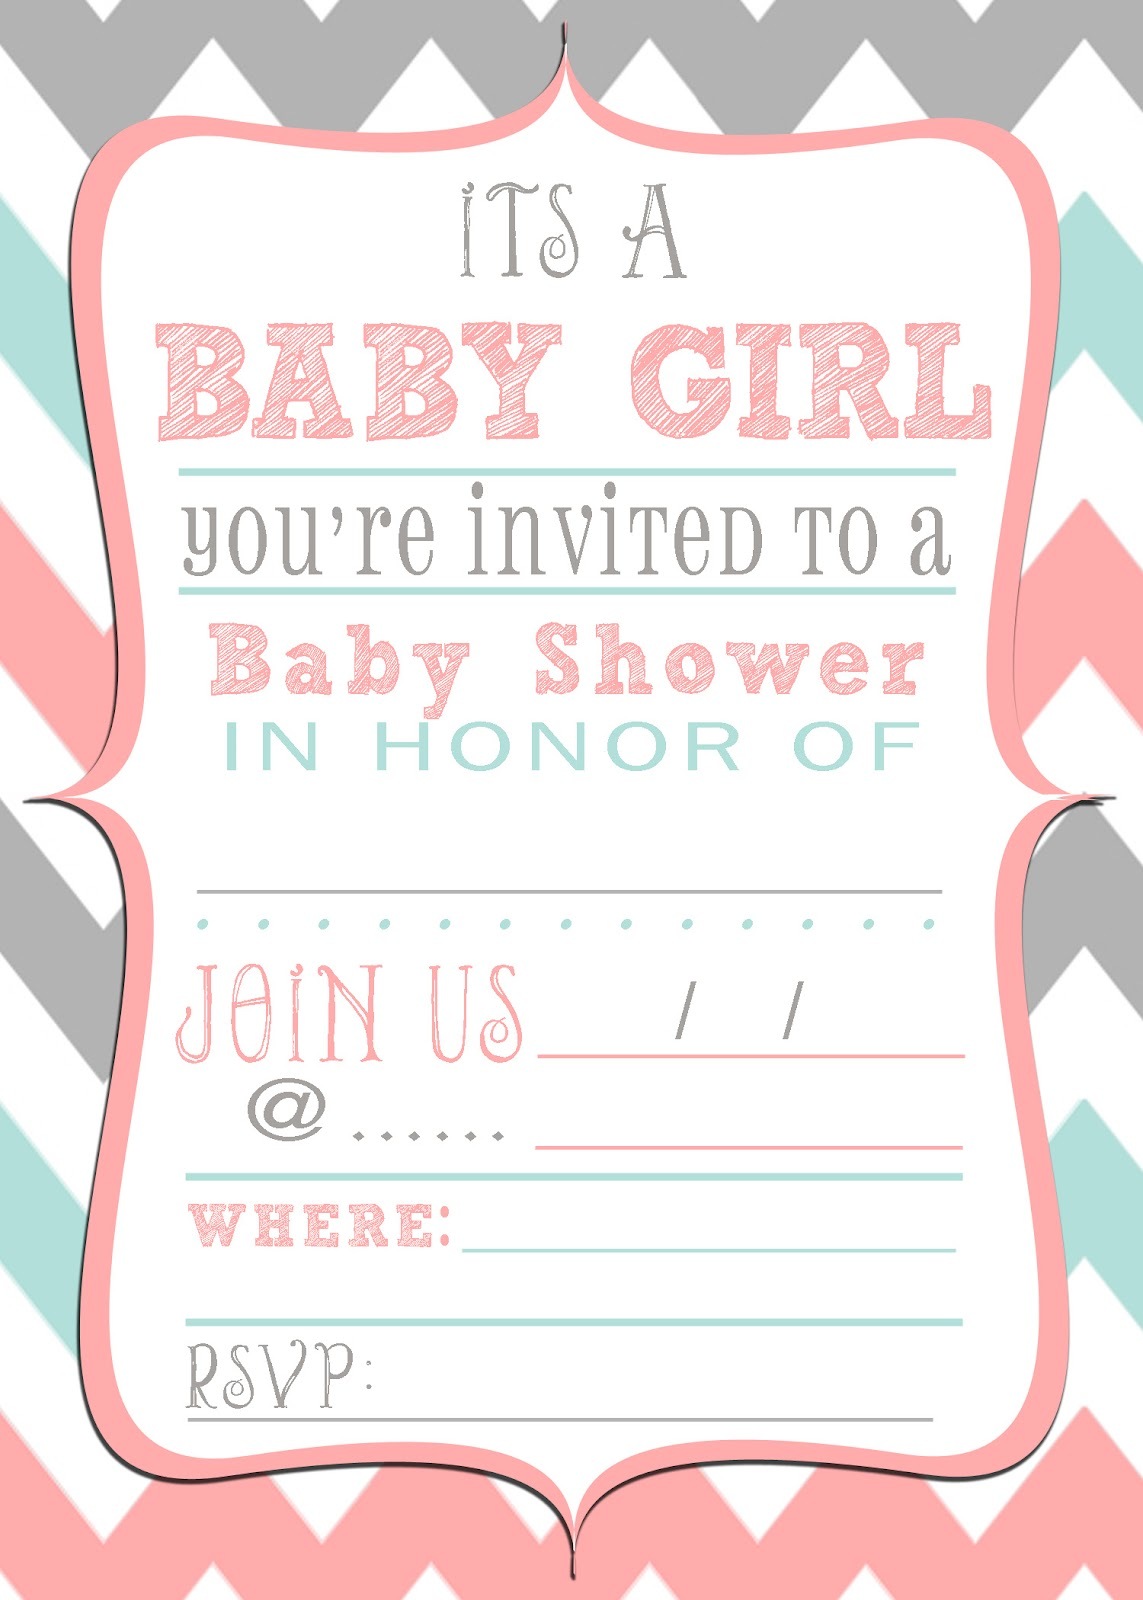 Insane image pertaining to baby shower invitations printable